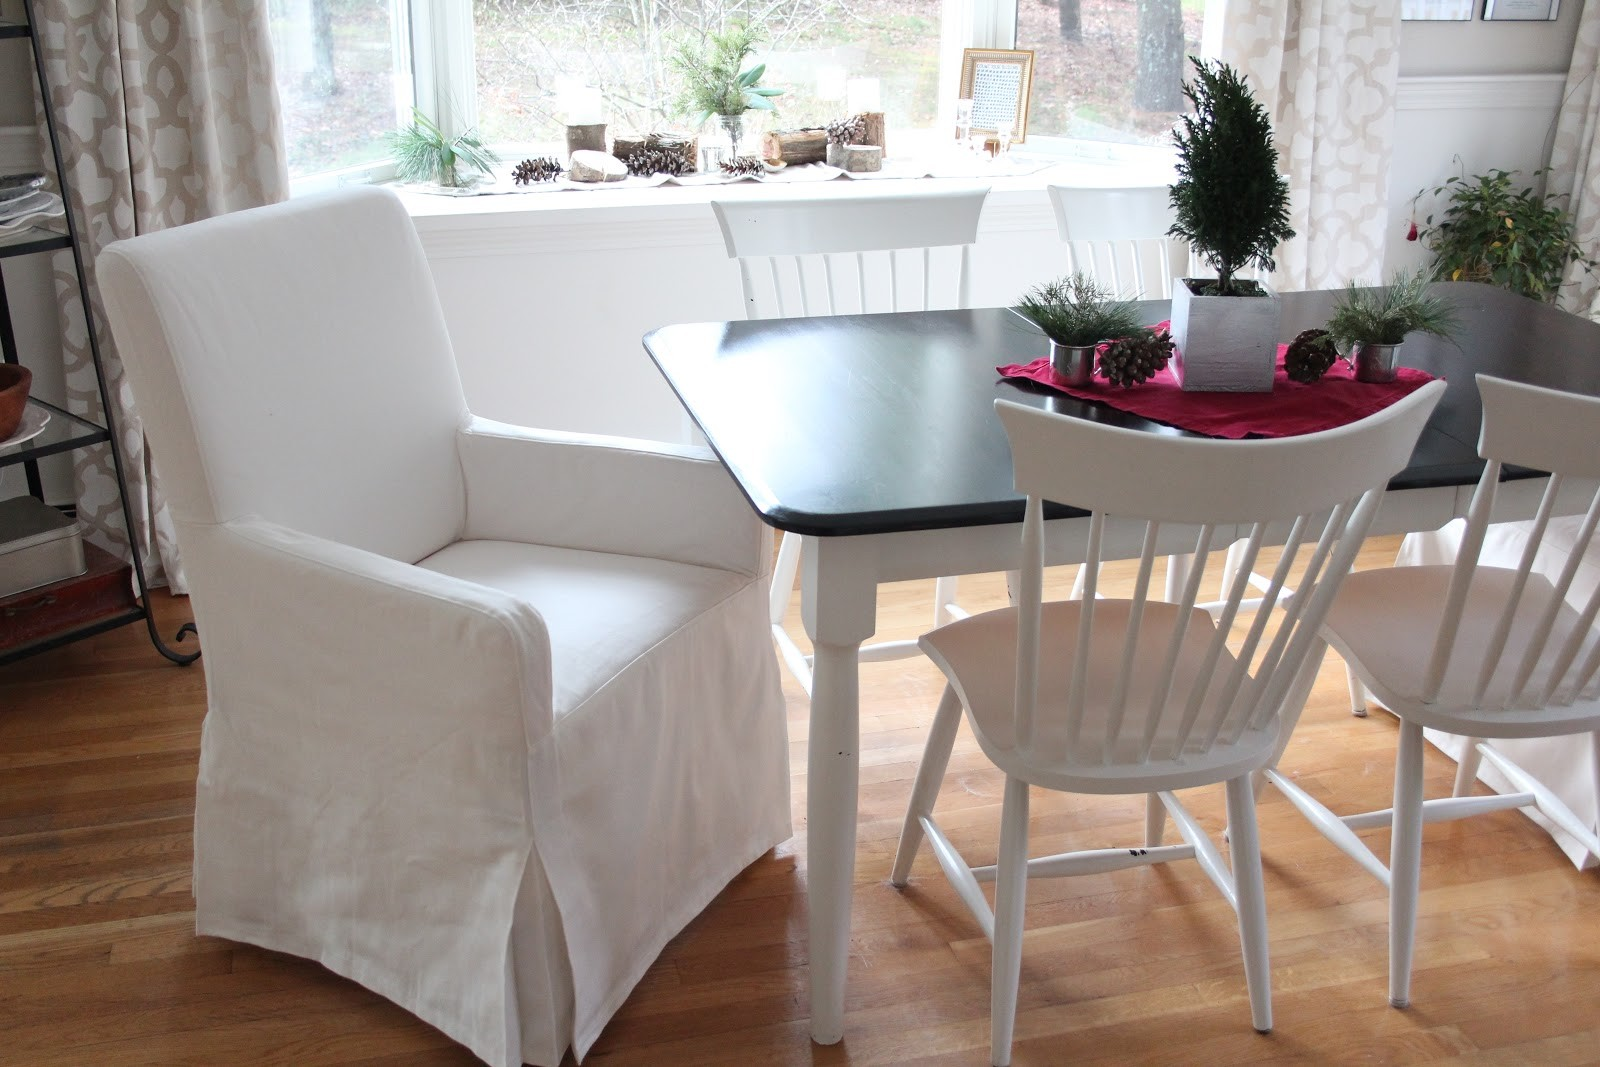 Slipcovers For Dining Room Chairs Without Arms | Top Home ...